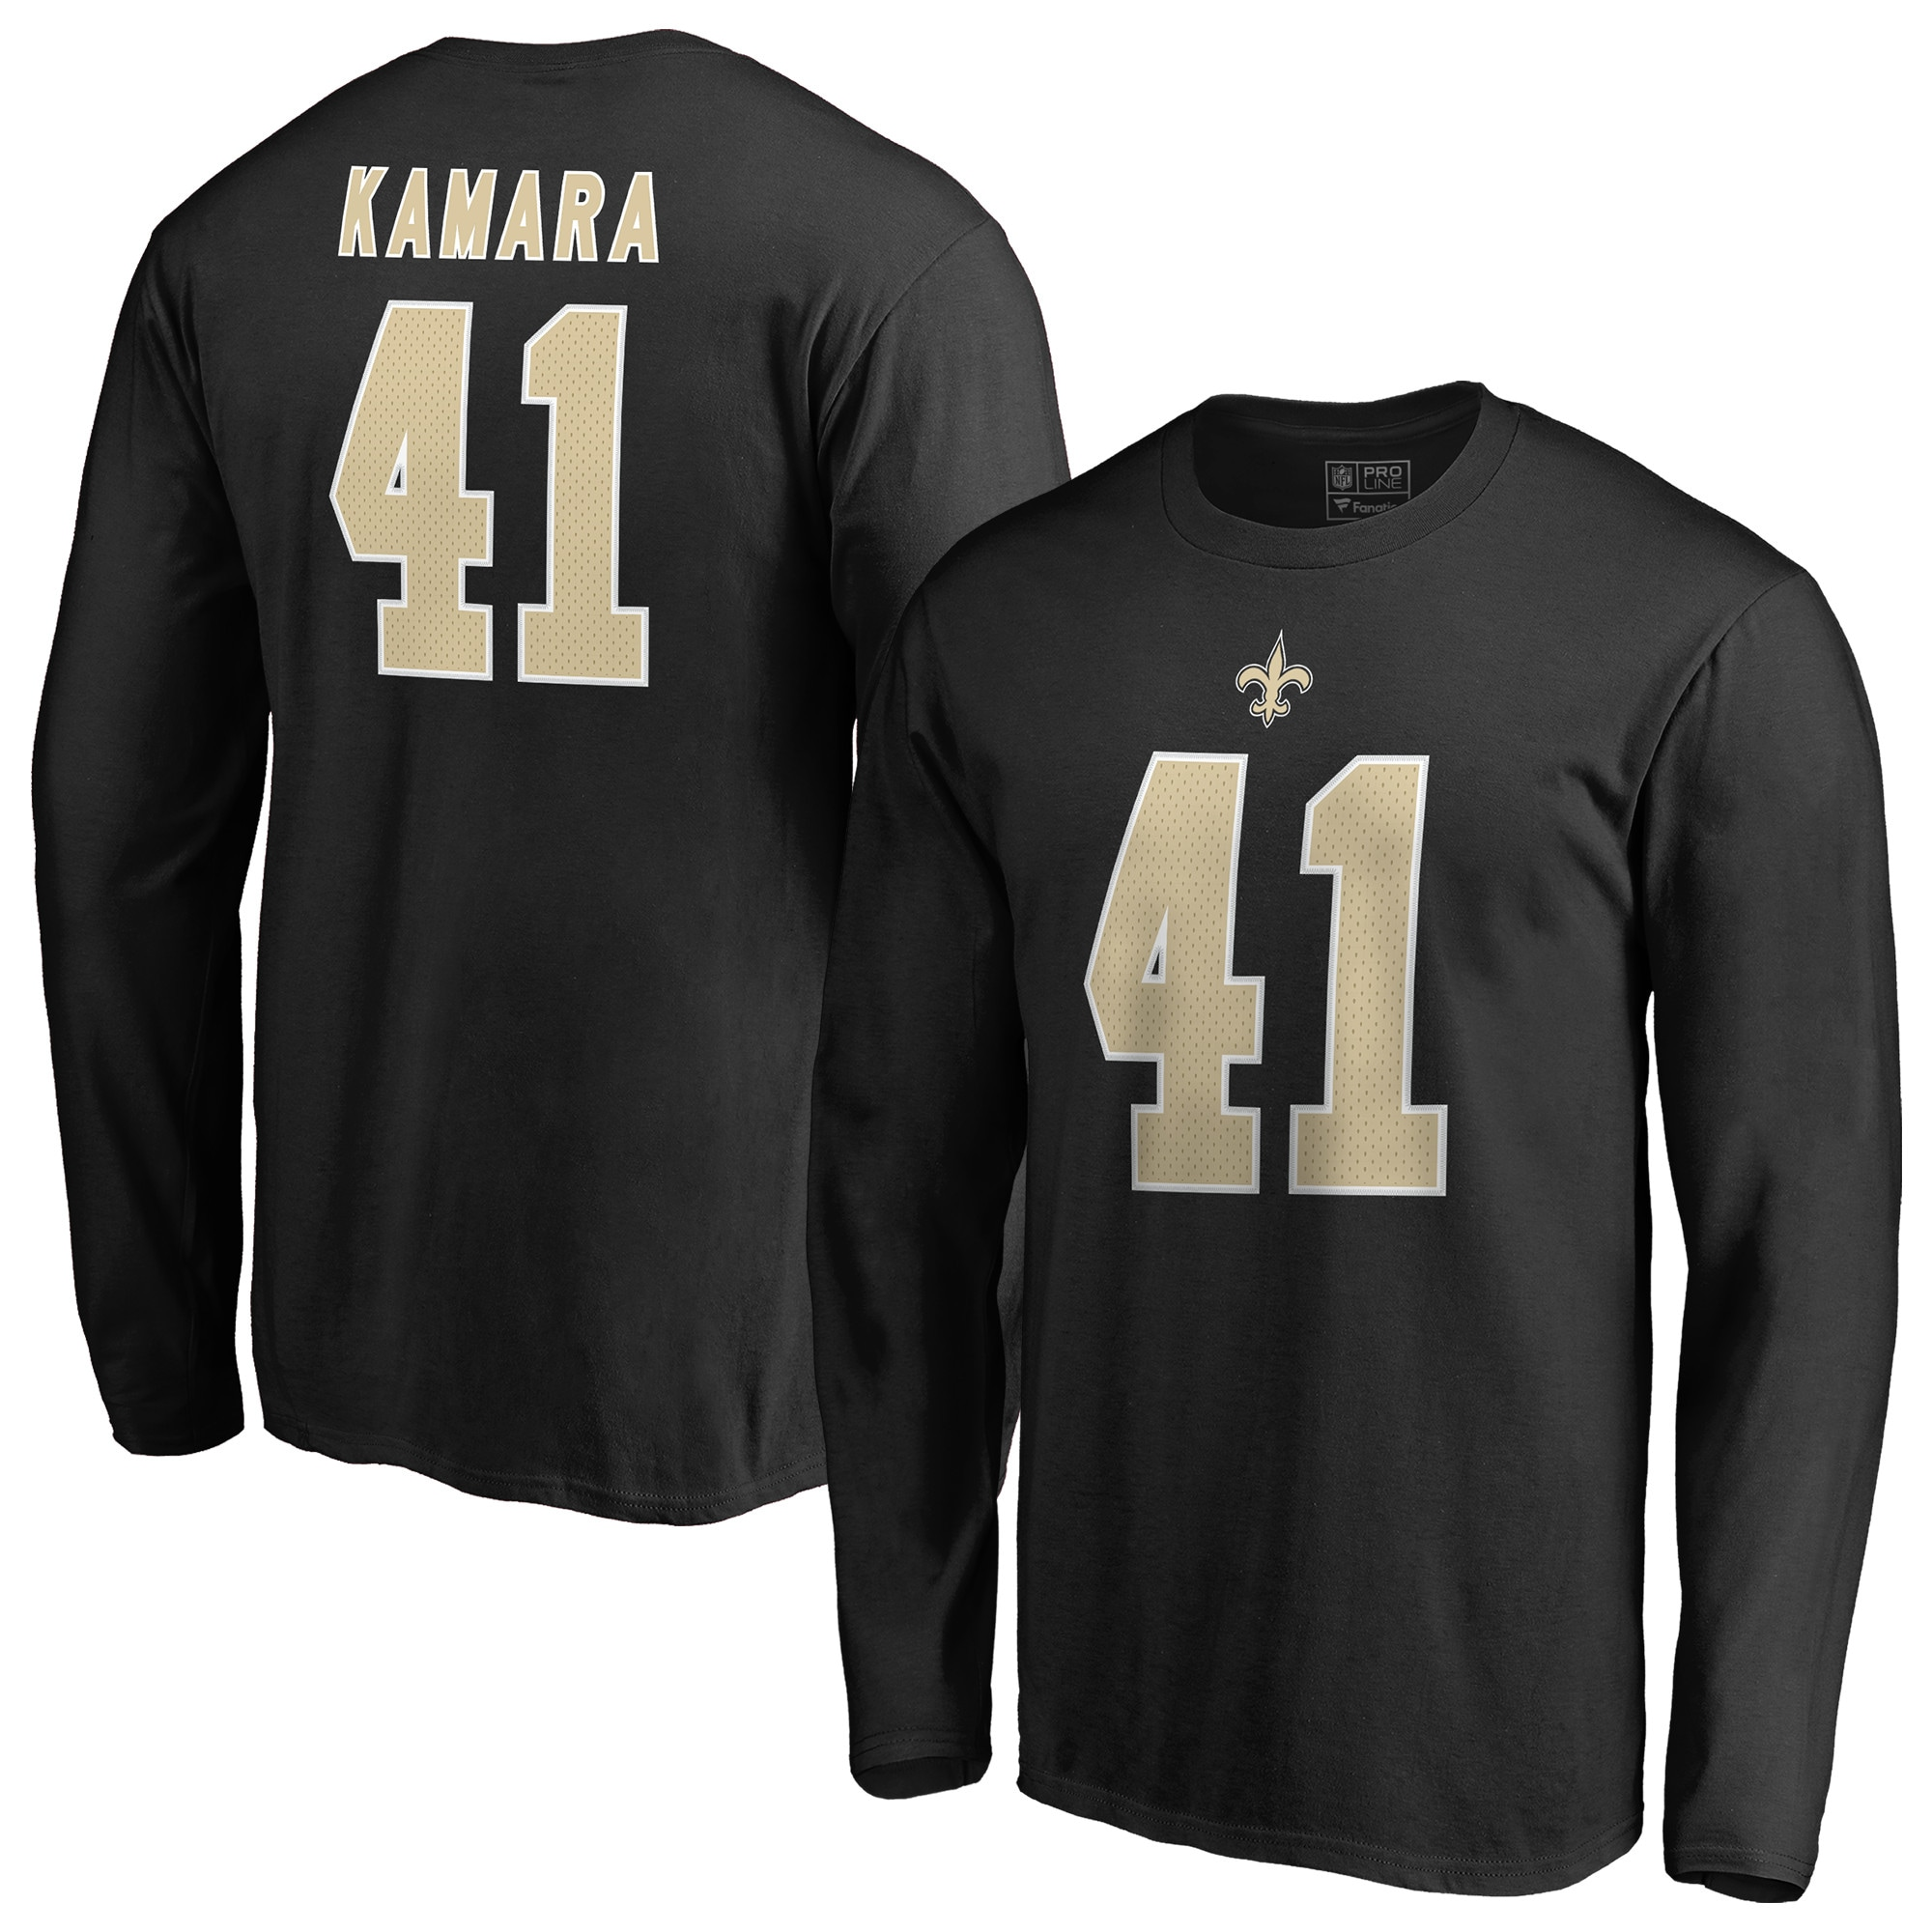 Alvin Kamara New Orleans Saints NFL Pro Line by Fanatics Branded Team Authentic Stack Name & Number Long Sleeve T-Shirt - Black